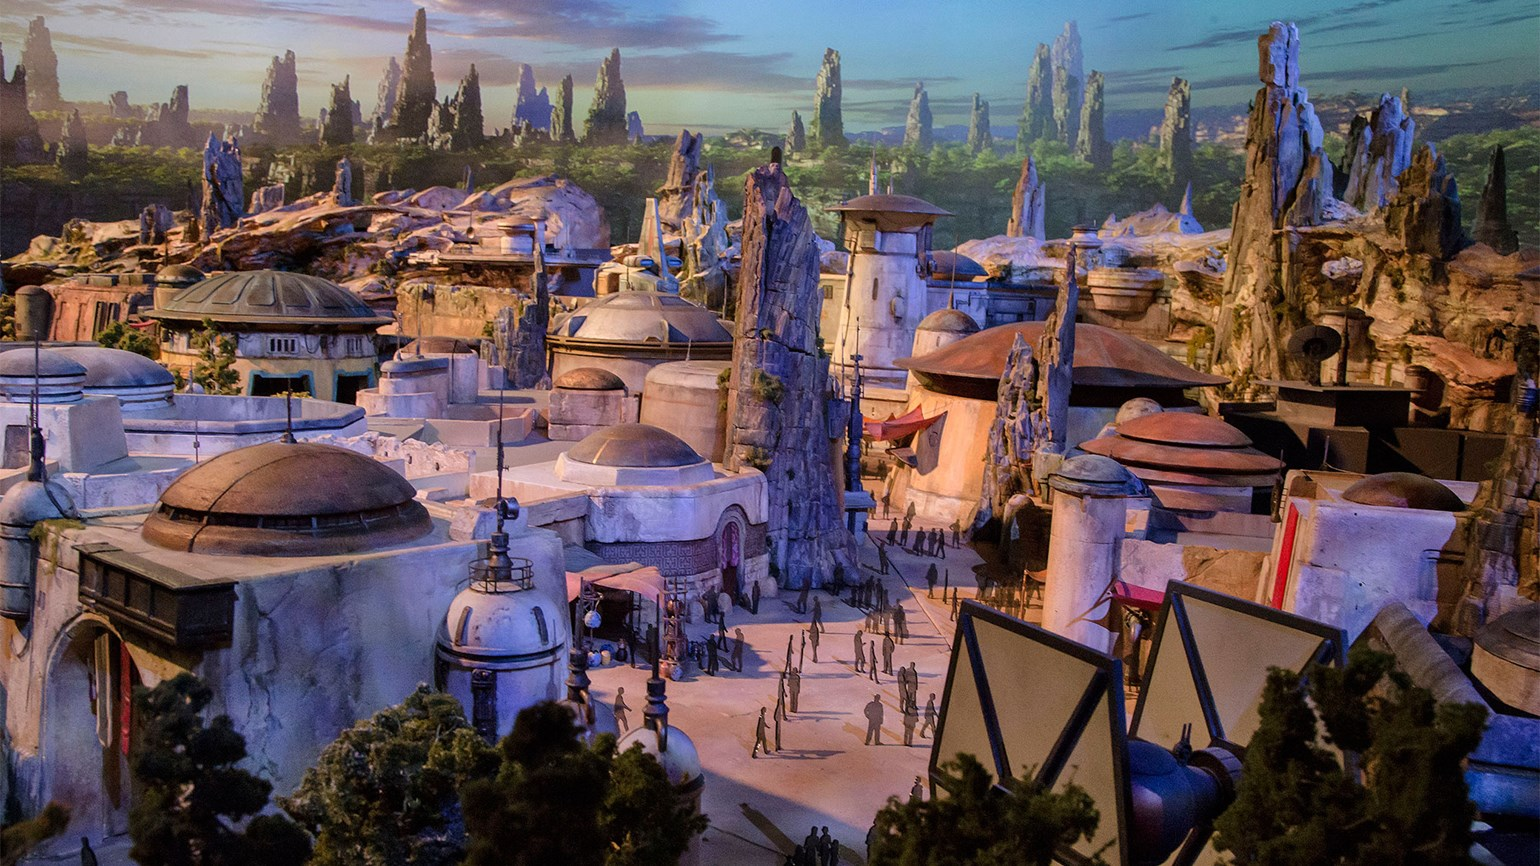 Franchises propel Disney parks growth